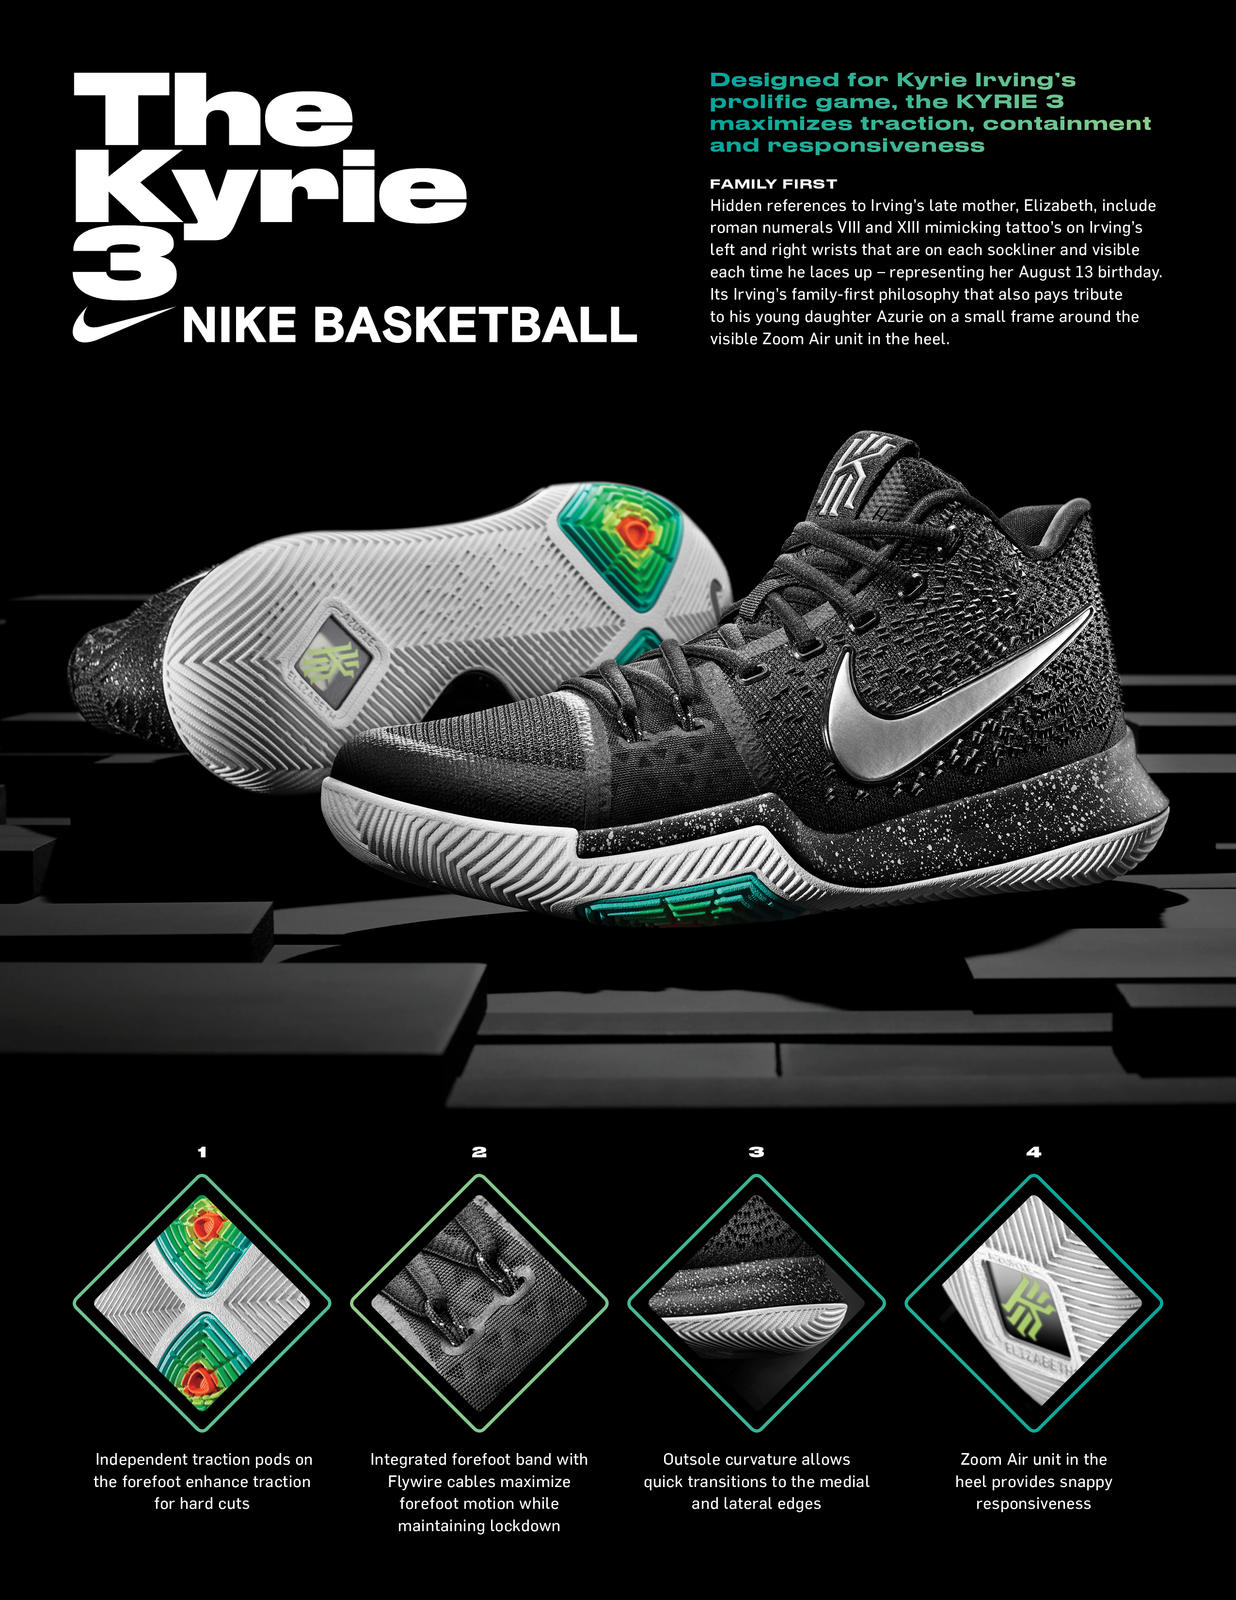 f3f84ddb4bf KYRIE 3 Built for Kyrie Irving s Prolific Game - Nike News